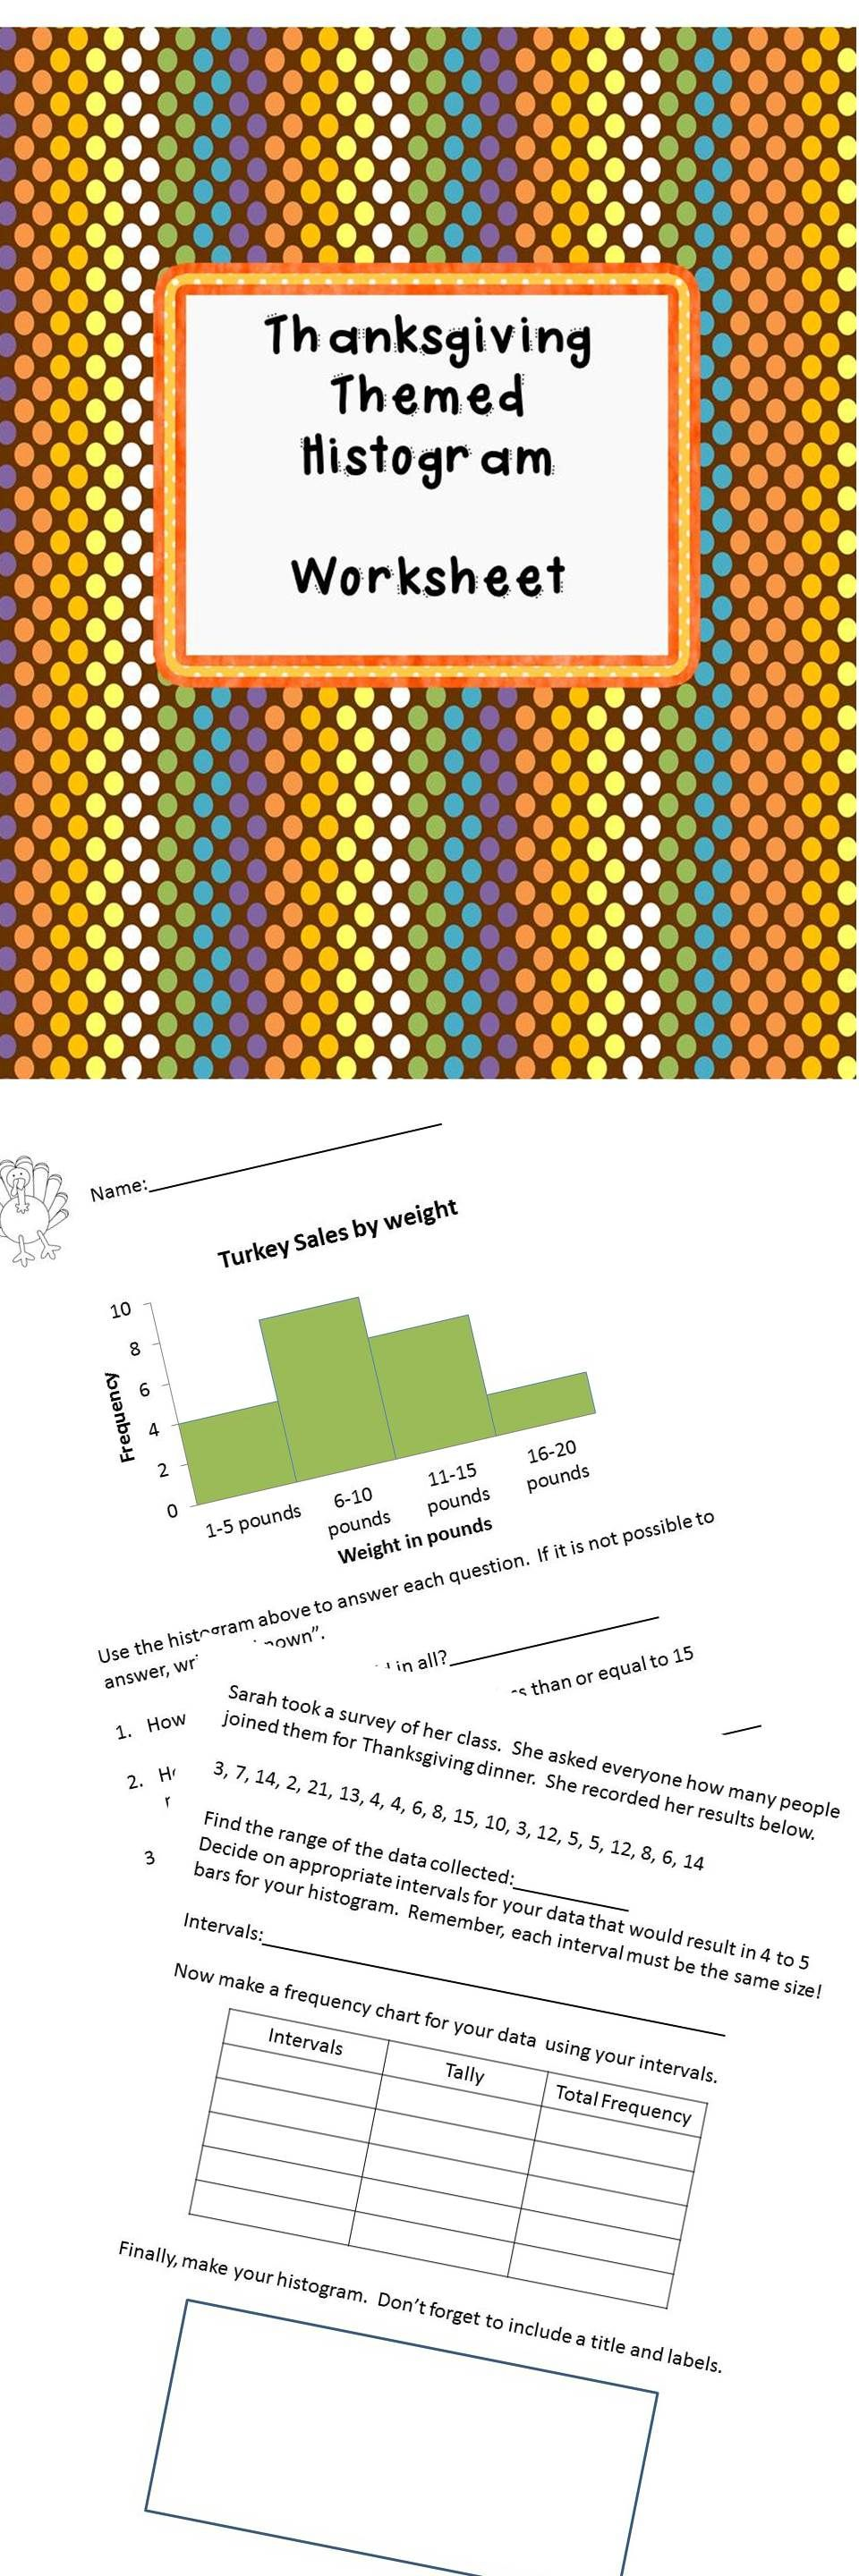 Worksheets Histogram Worksheet histogram worksheet 6 sp b 4 thanksgiving thankful for and 4